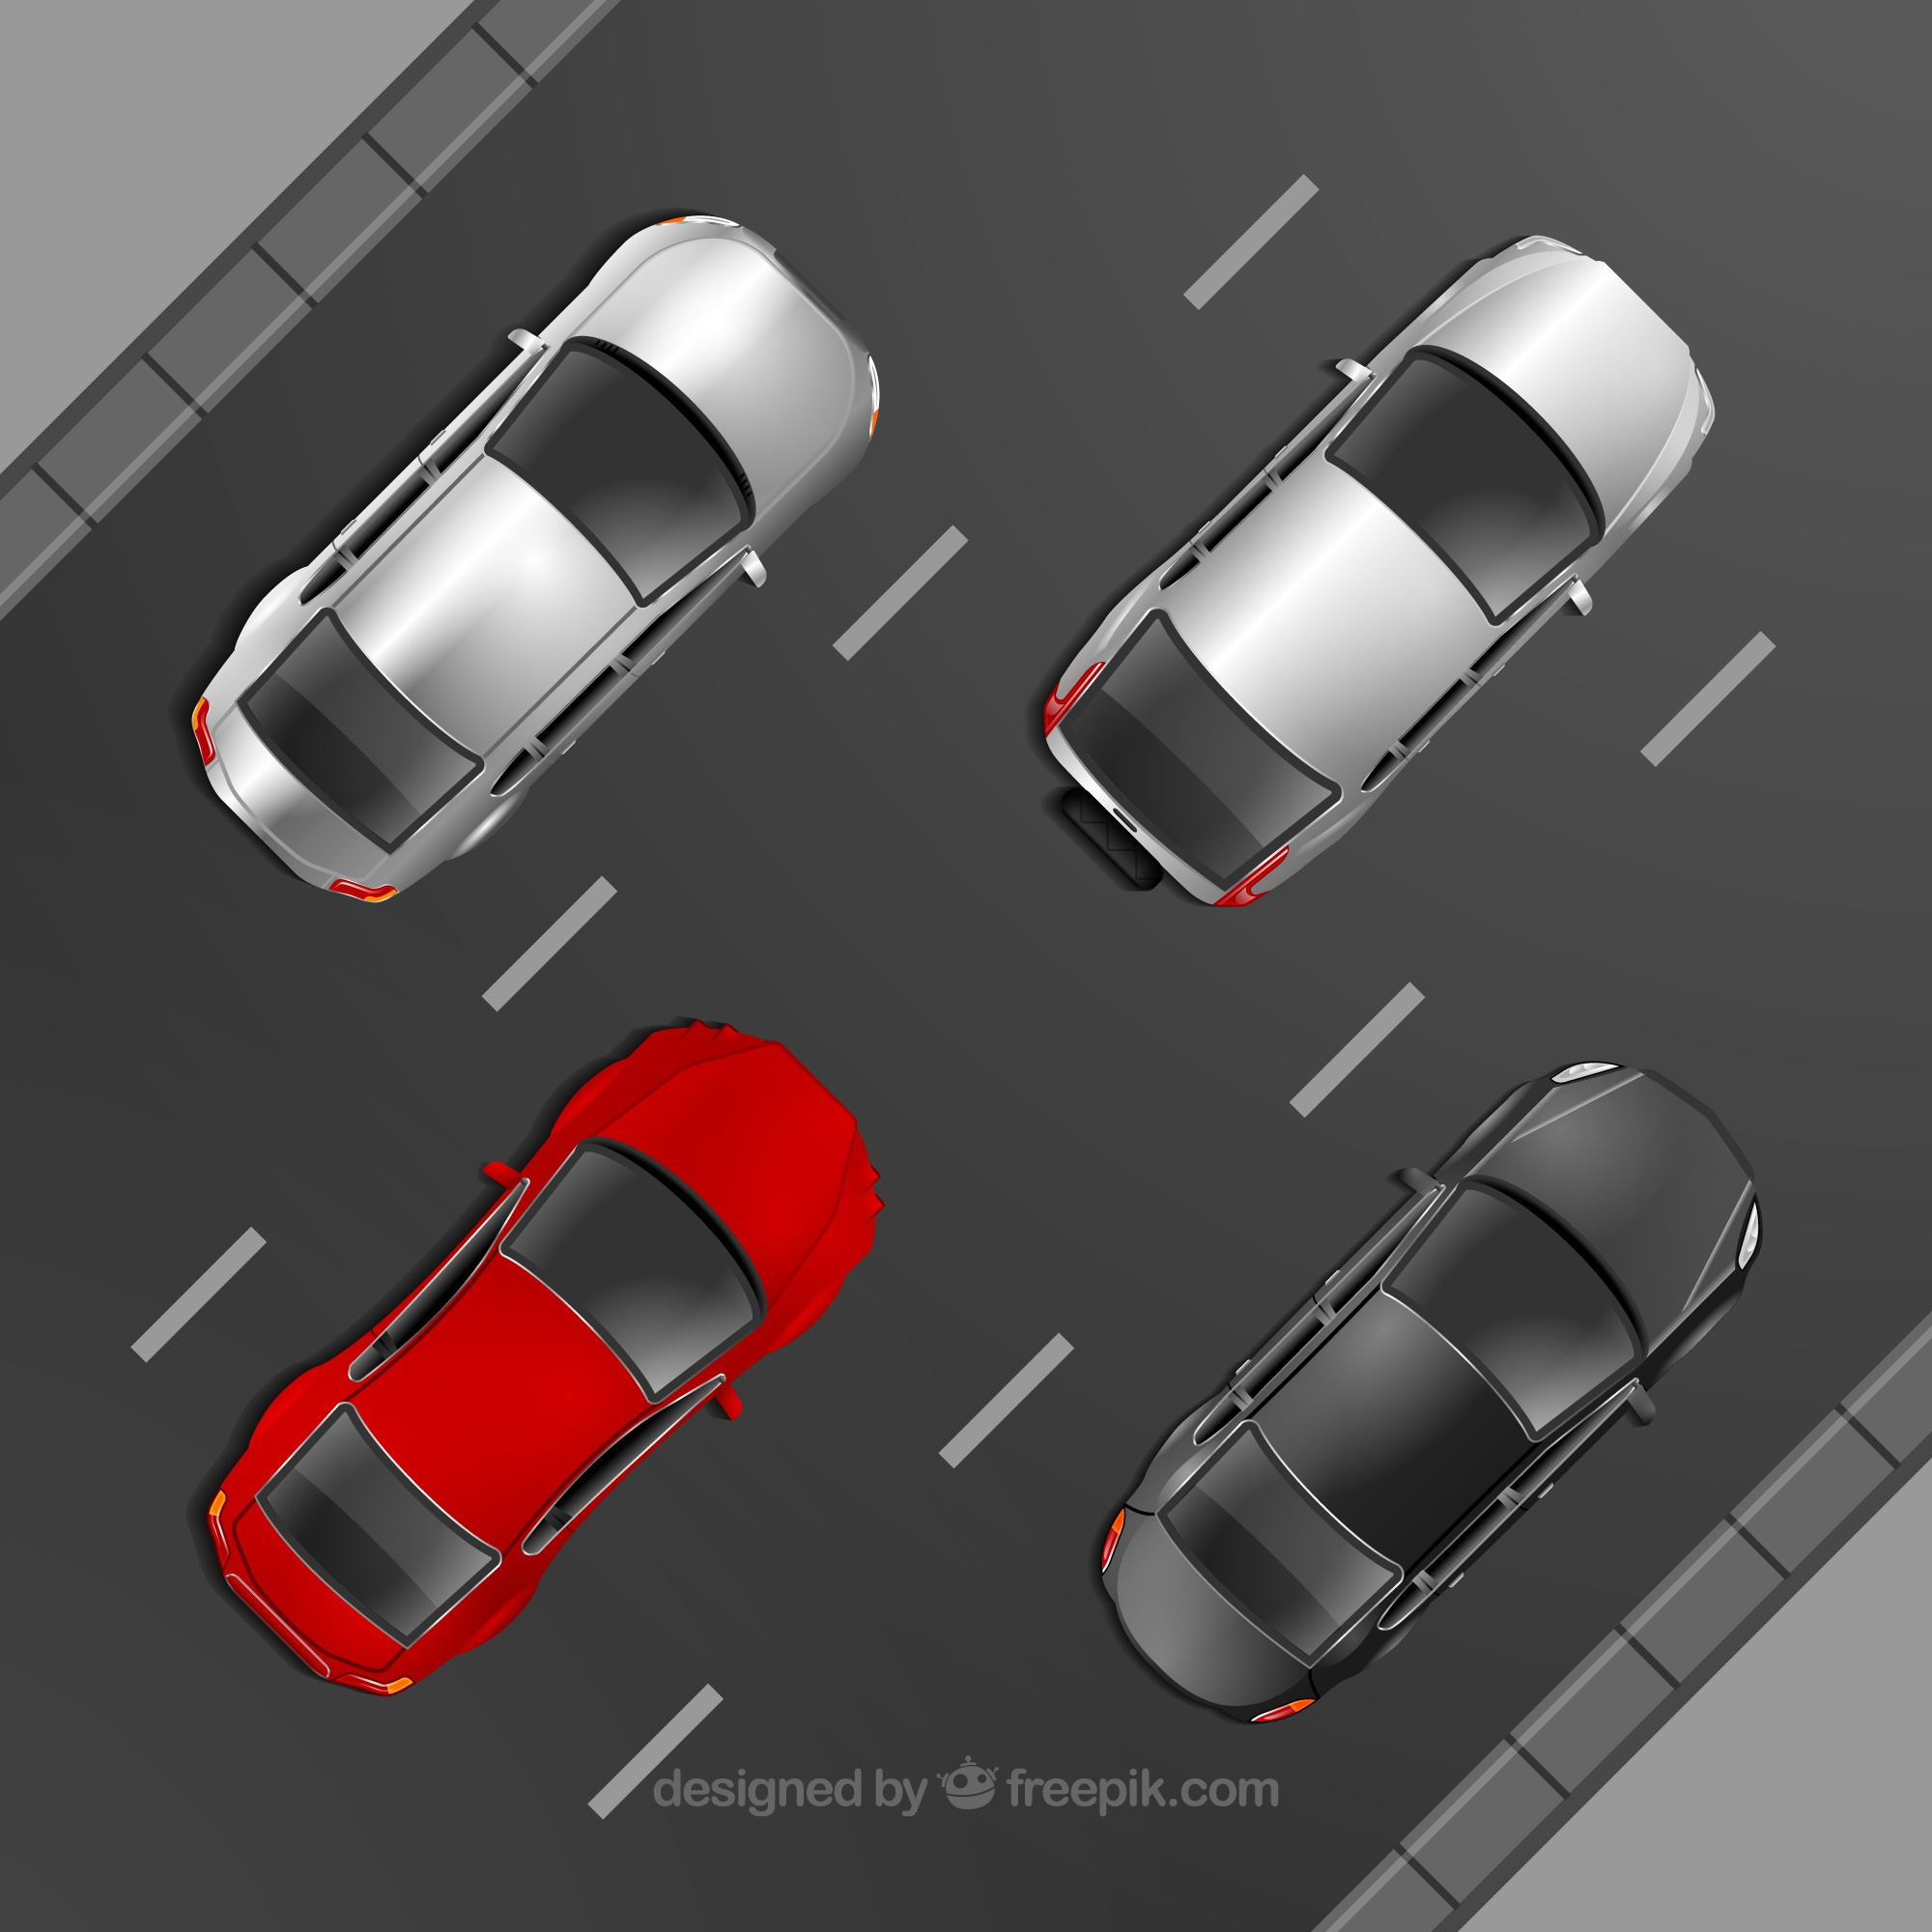 Top view of four cars driving on road